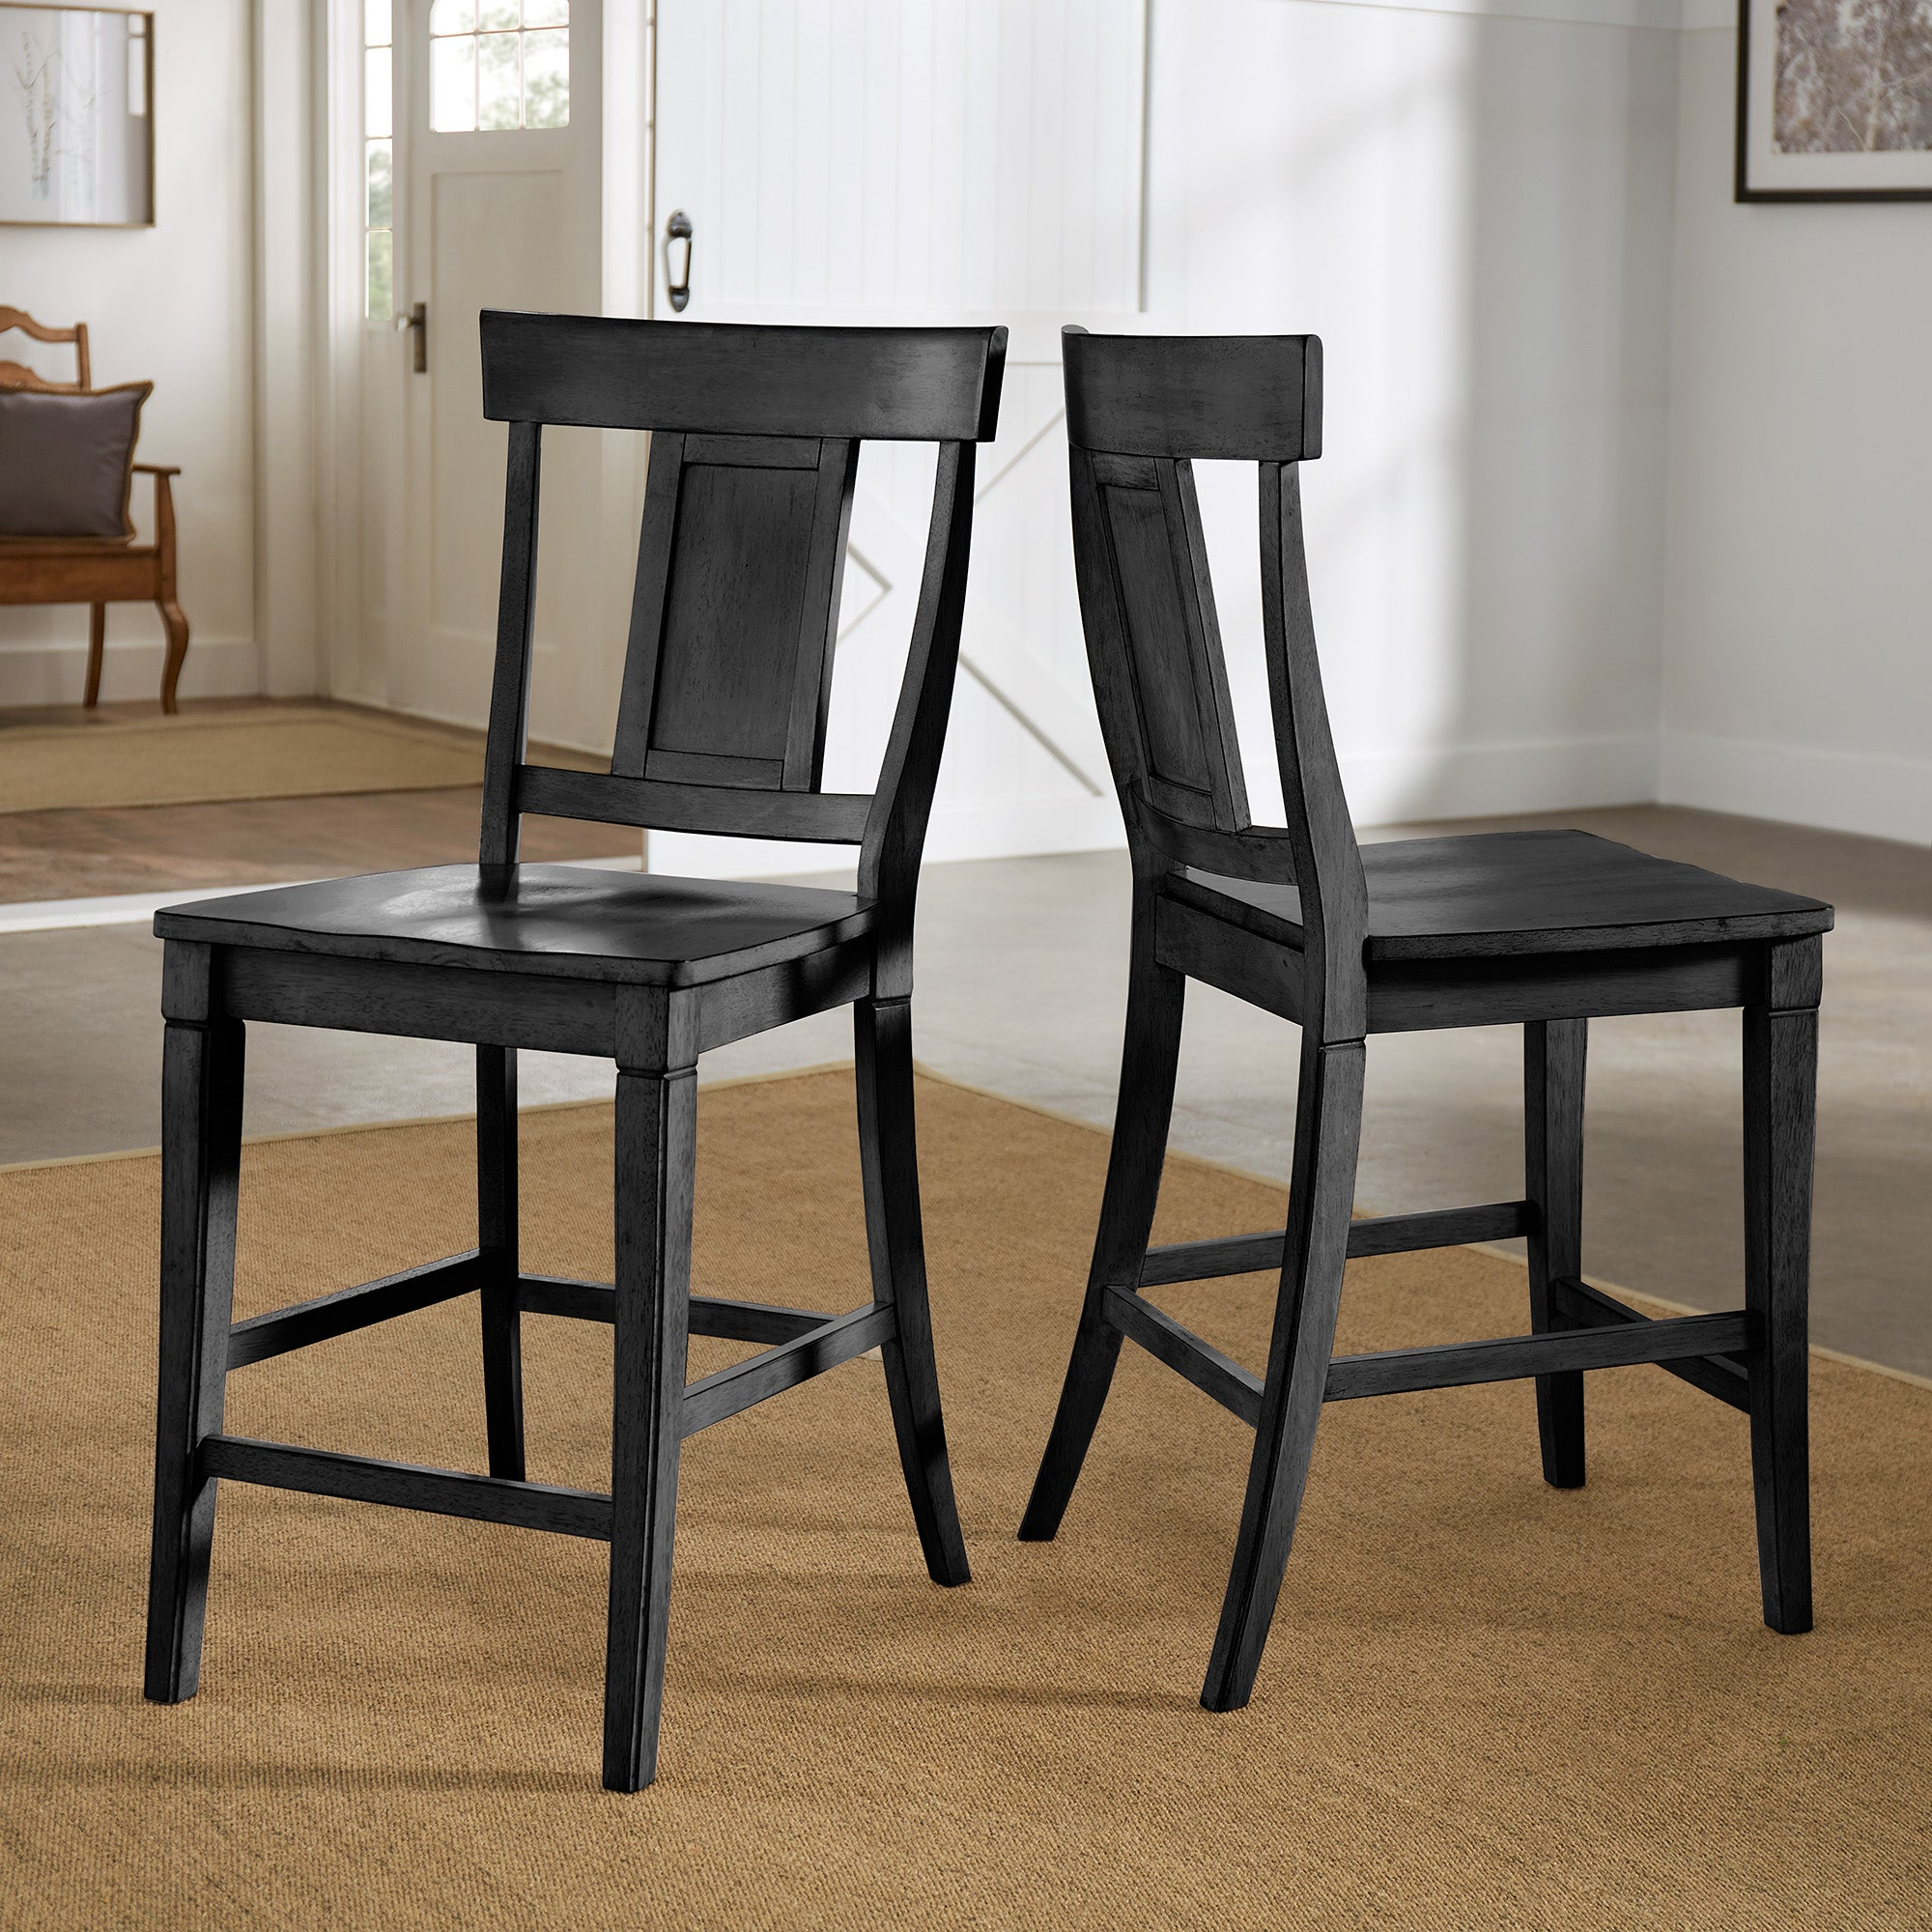 Panel Back Wood Counter Height Chair (Set of 2) - Antique Black